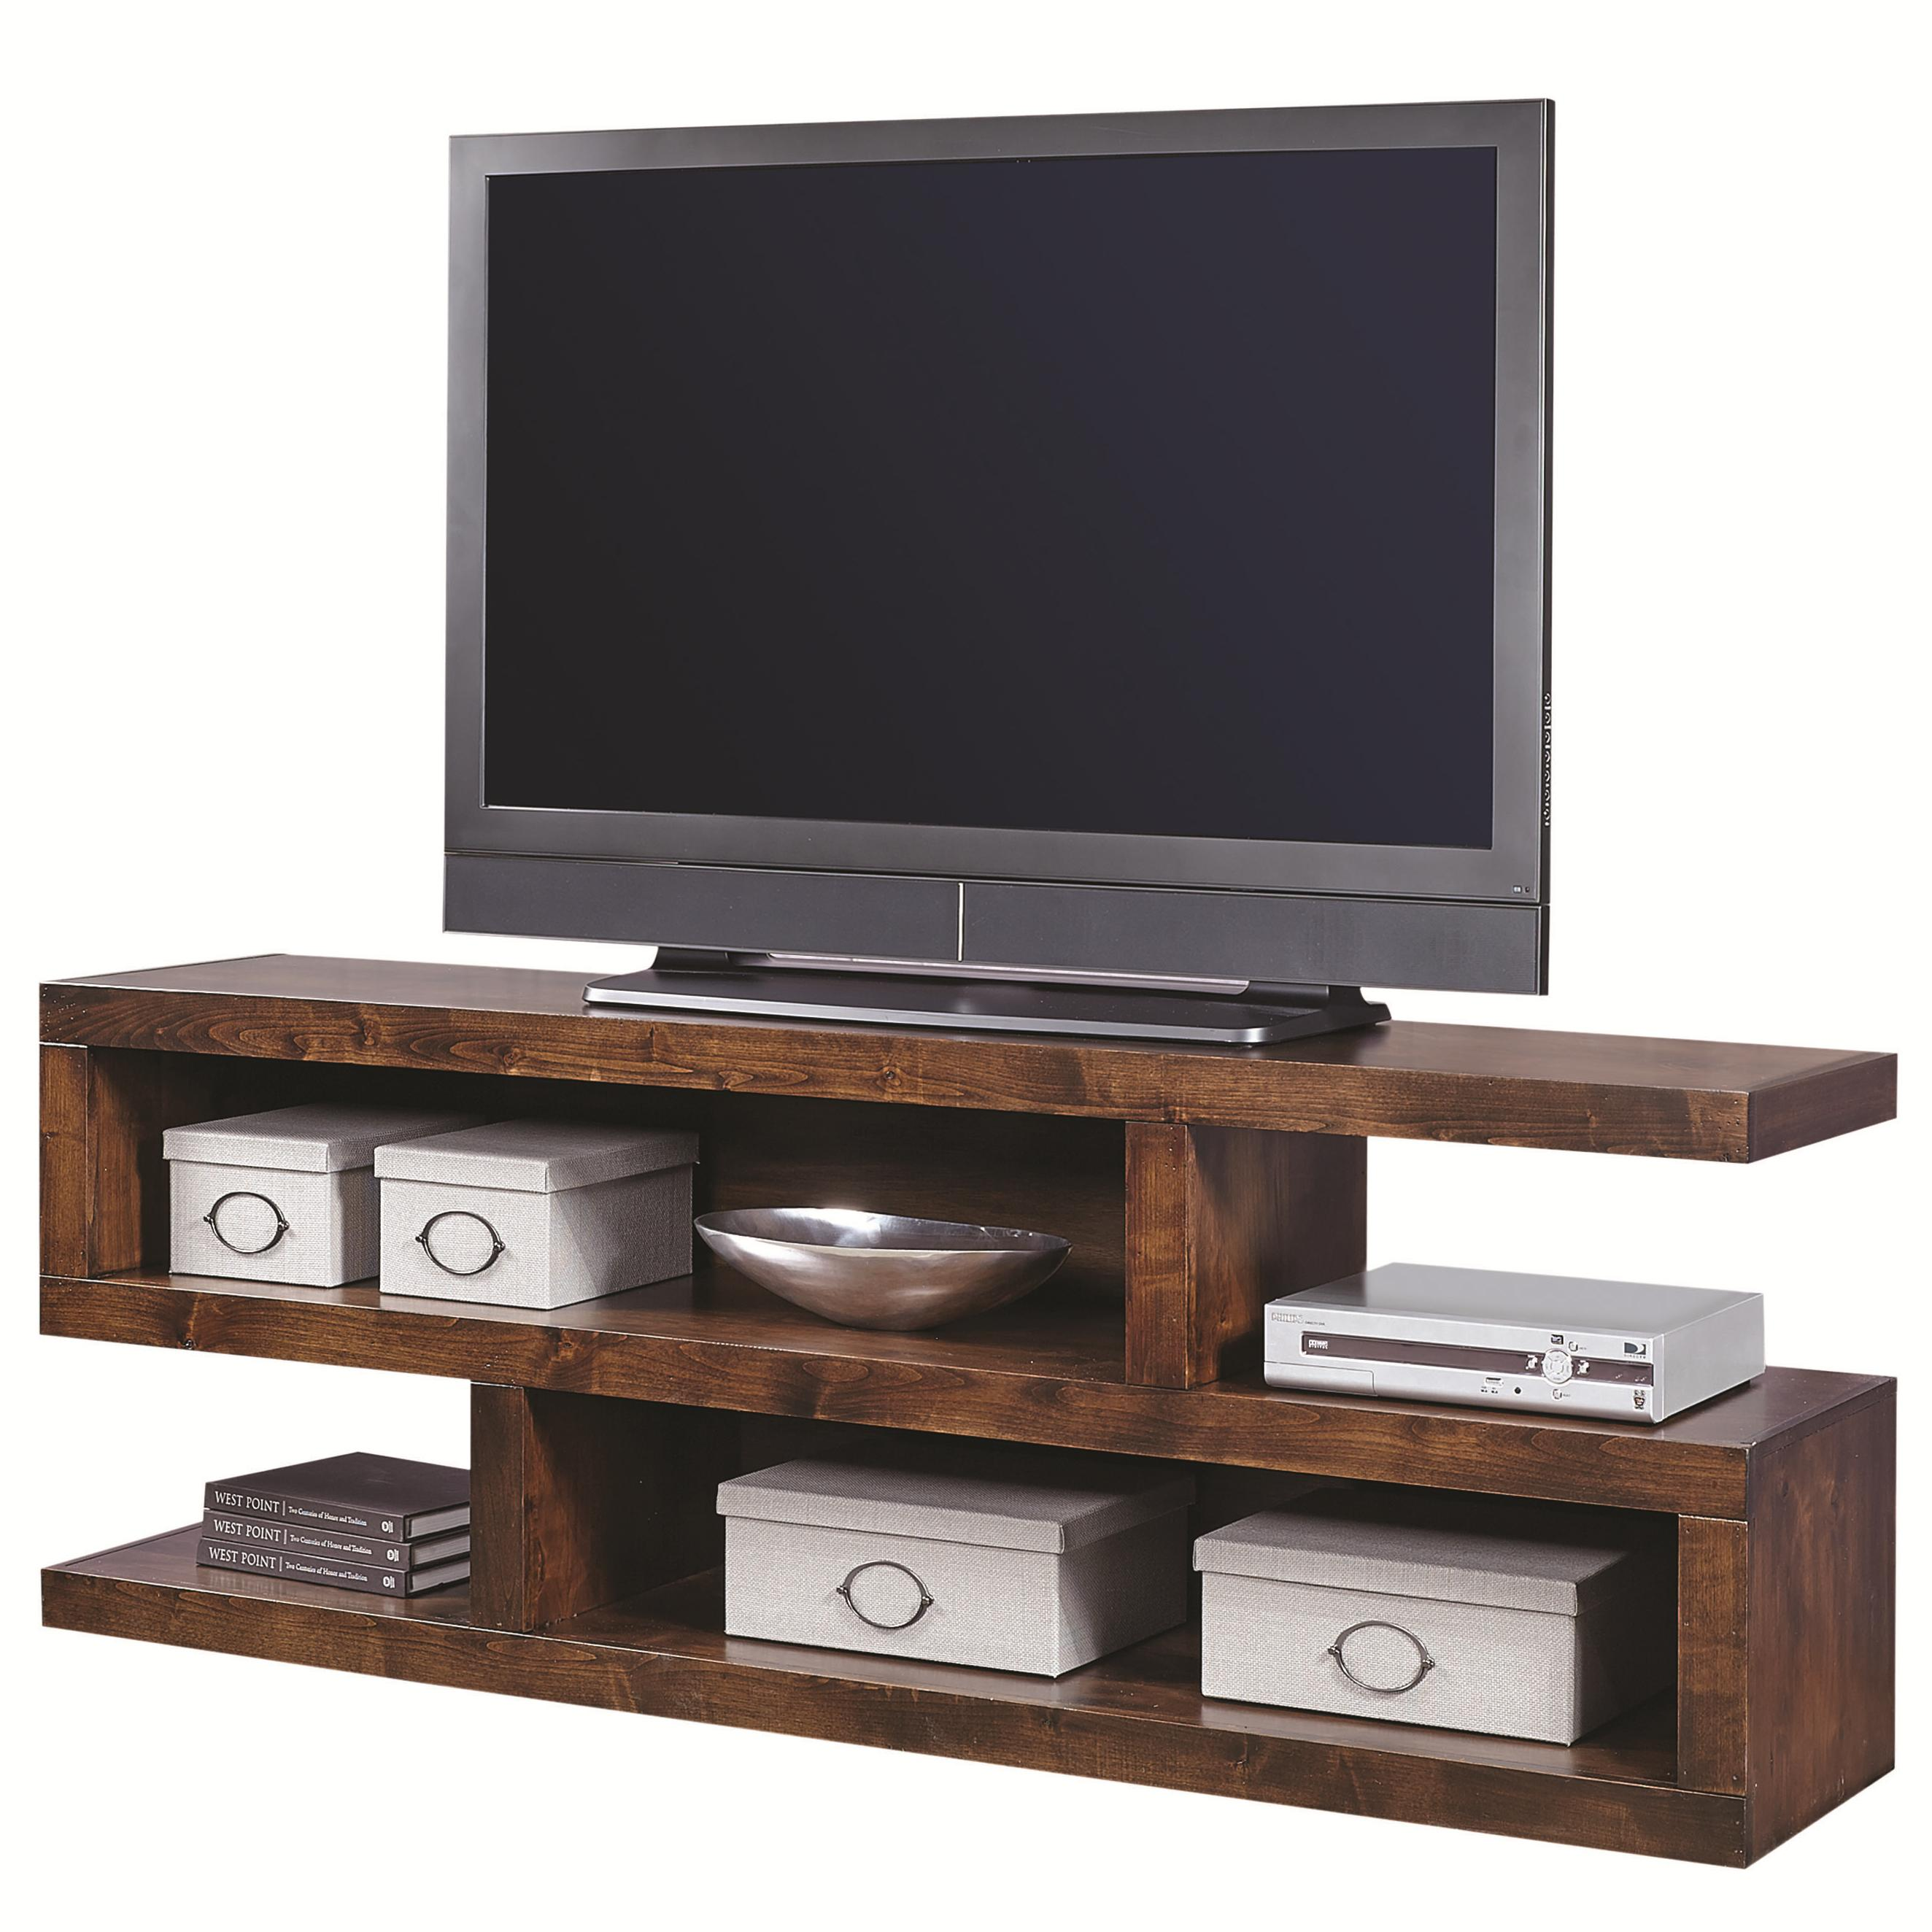 Aspenhome Contemporary Alder 74 Inch Open Console   Item Number: DL1075 TOB